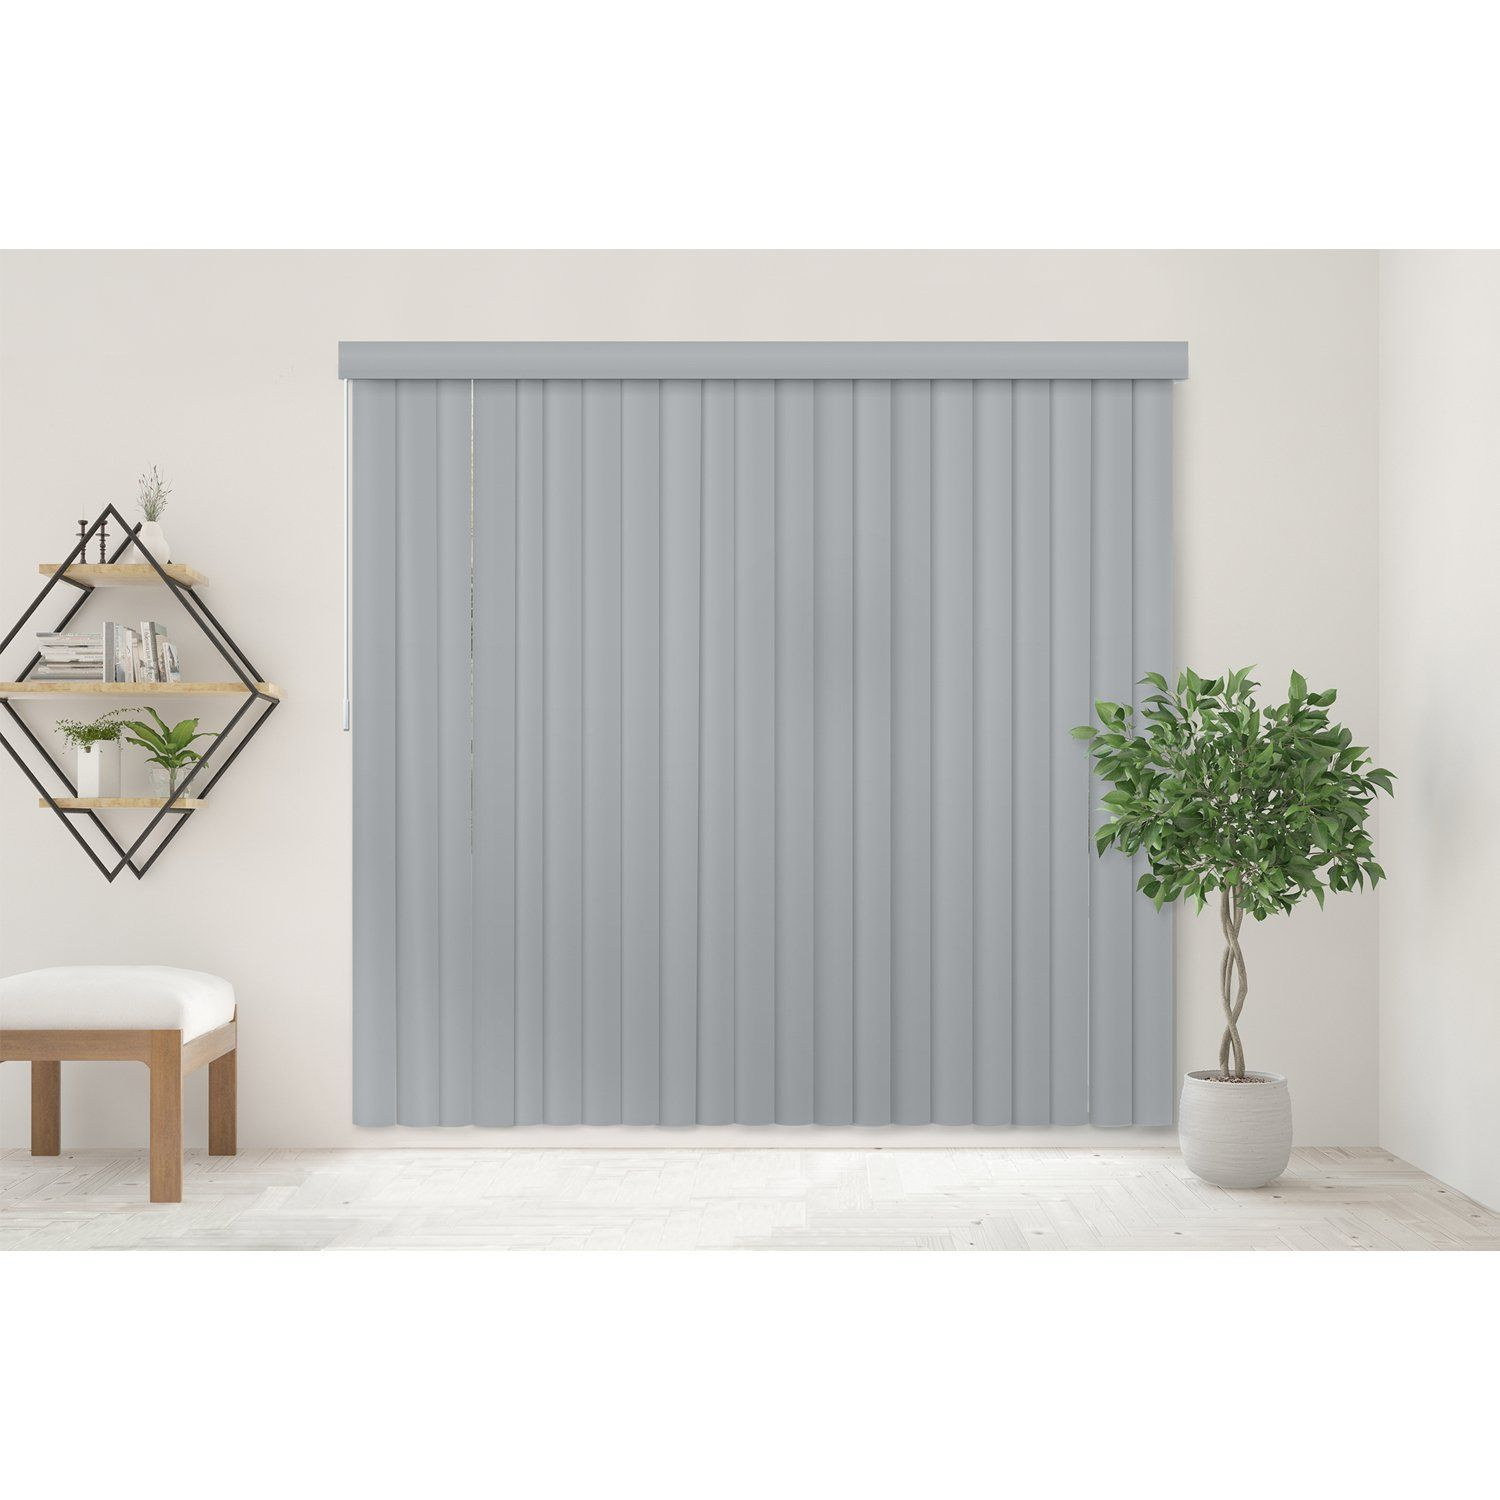 Chicology cordless vertical blinds patio door or large